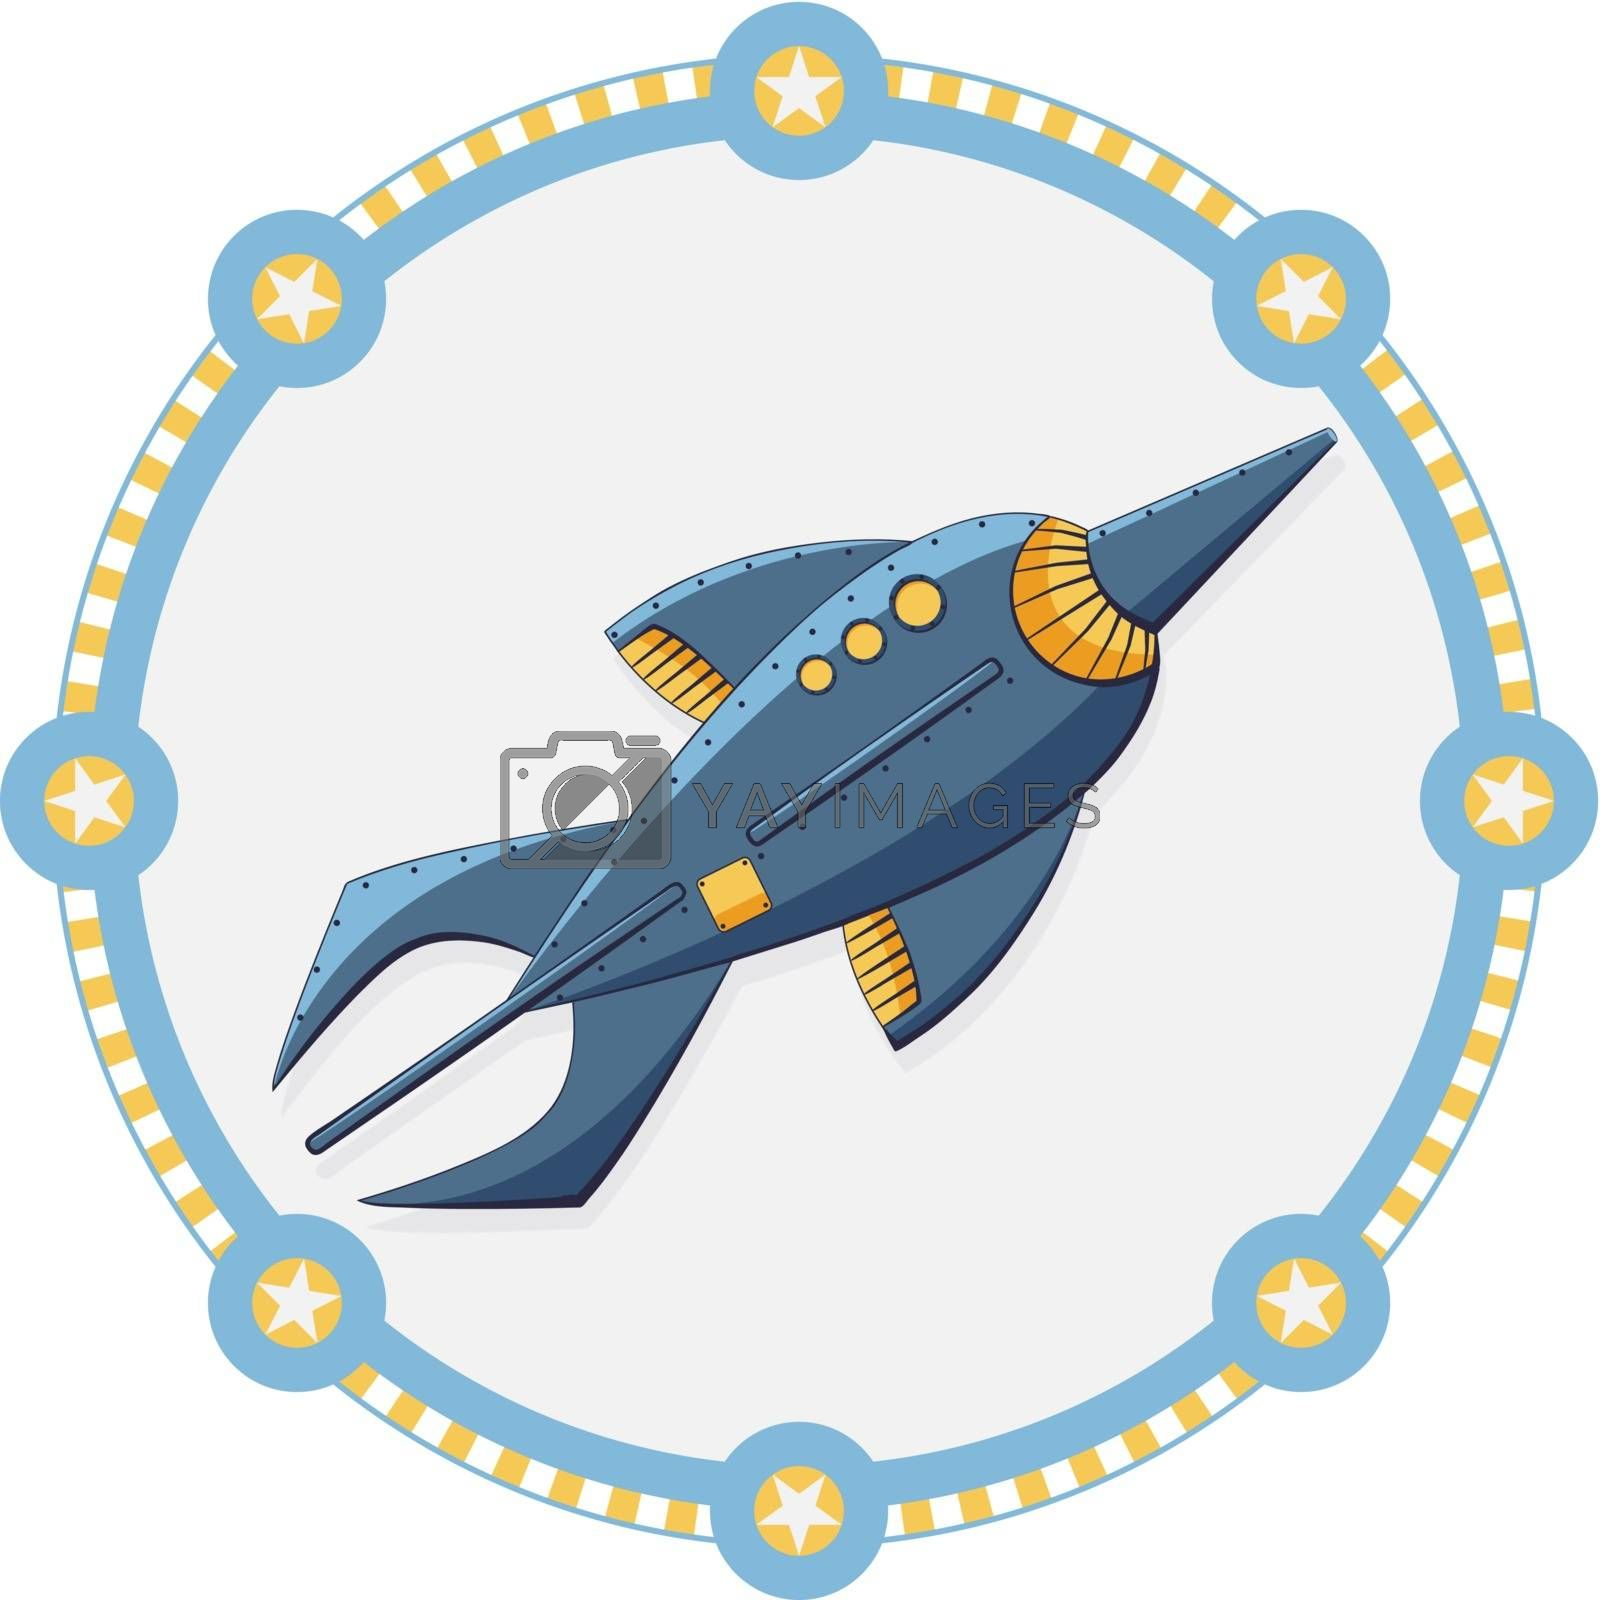 Blue space rocket with a round frame